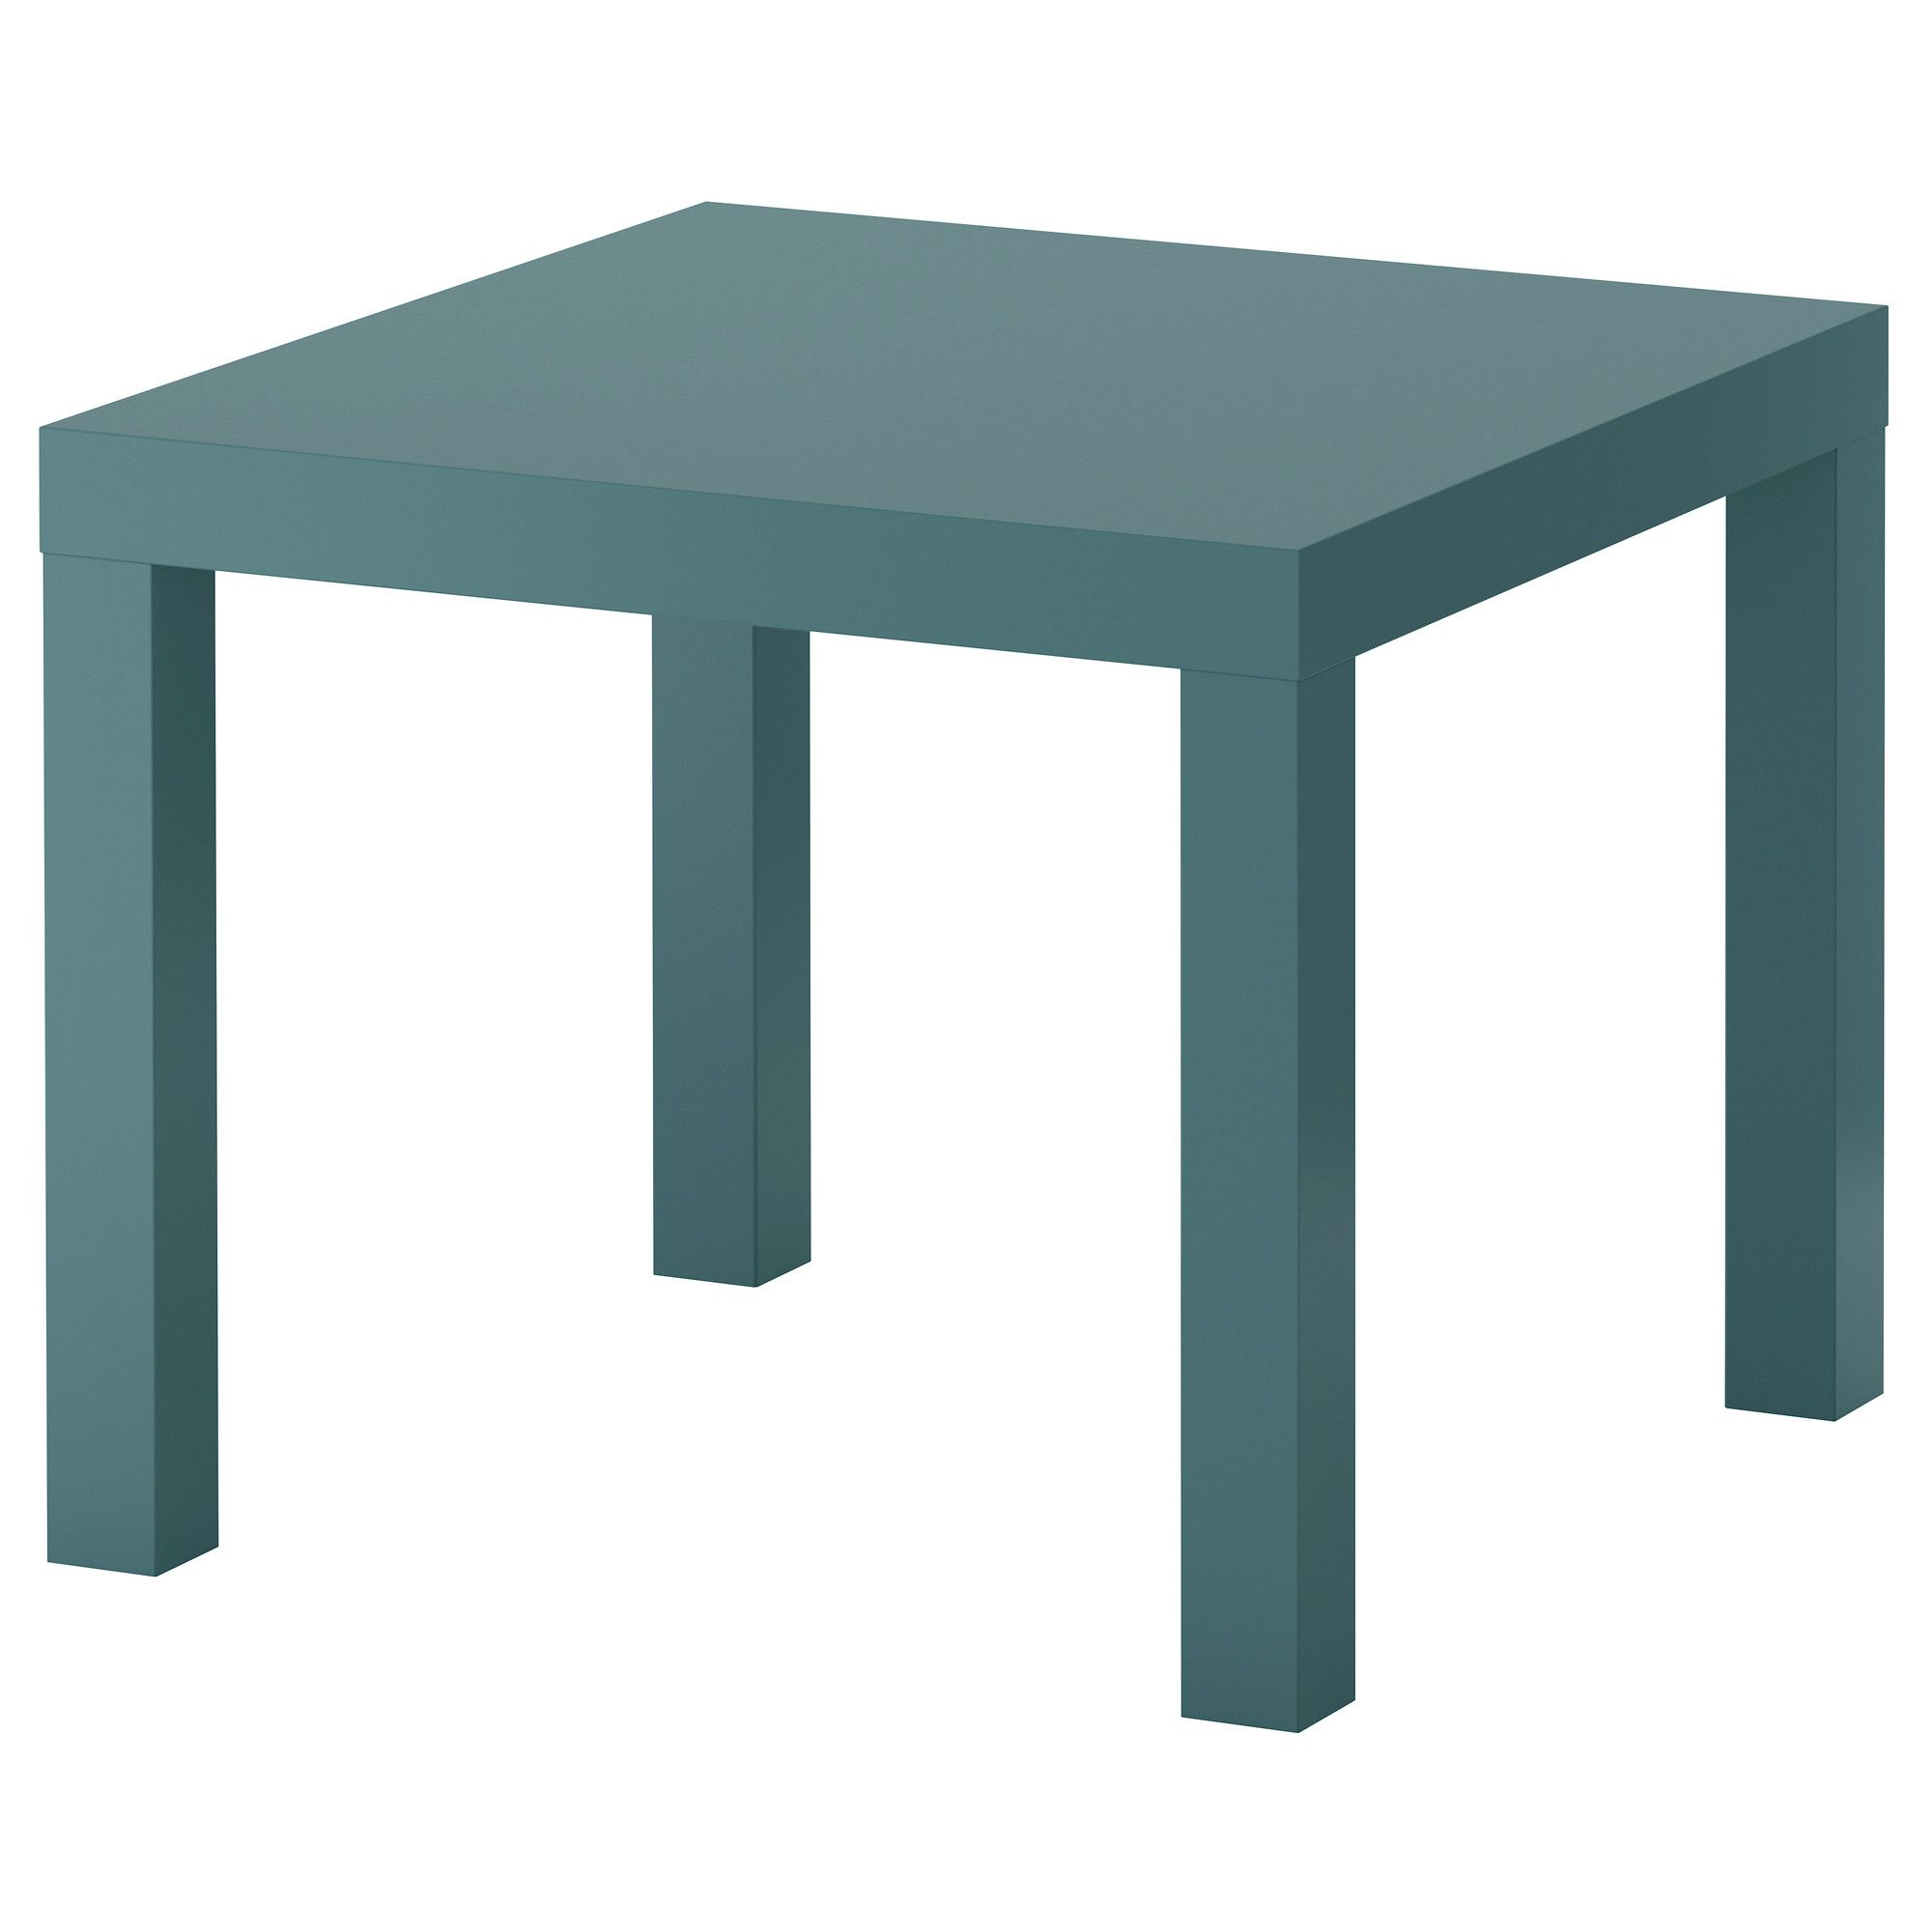 Color birch effect black brown high gloss gray turquoise white white - Thinking Of Painting My Current Coffee Table A Darker Shade Of This To Add Some Drama To A Gray Toned Room